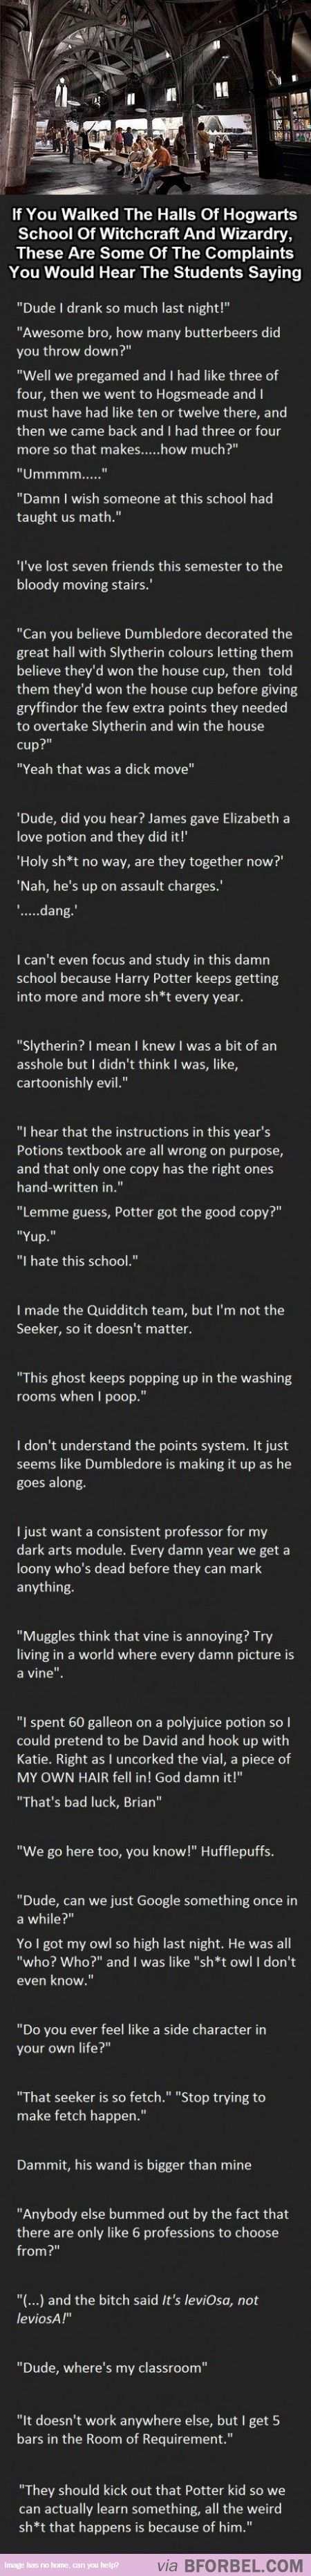 If Hogwarts Students Complained…Bahahaha this is great